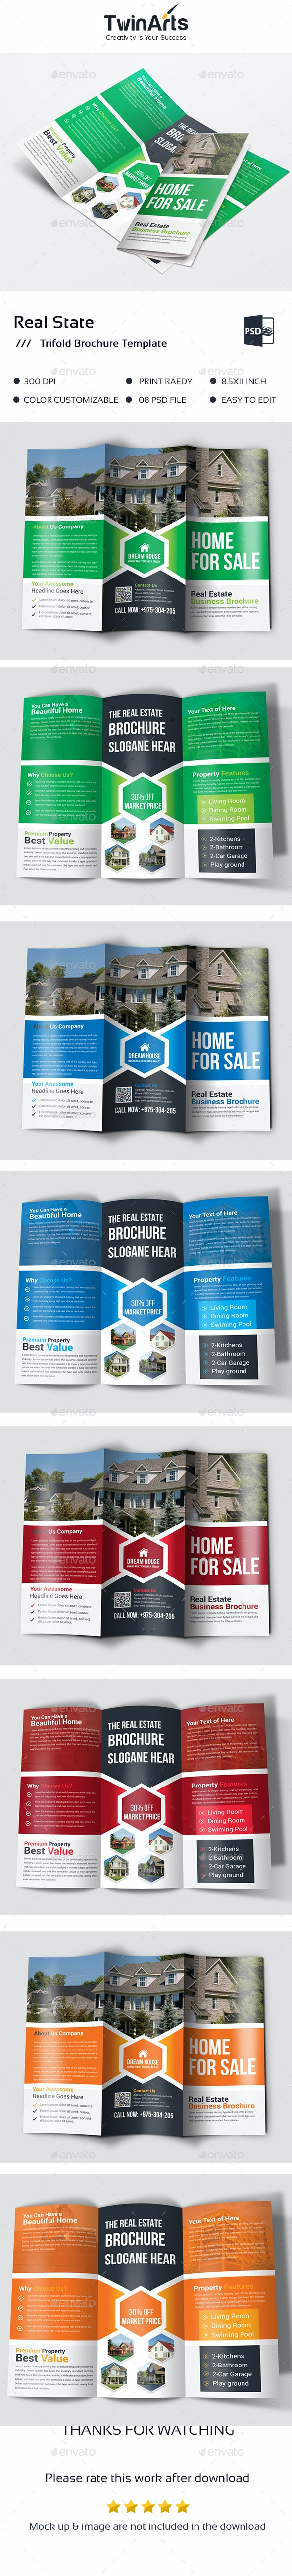 Real State Trifold Brochure - Brochures Print Templates